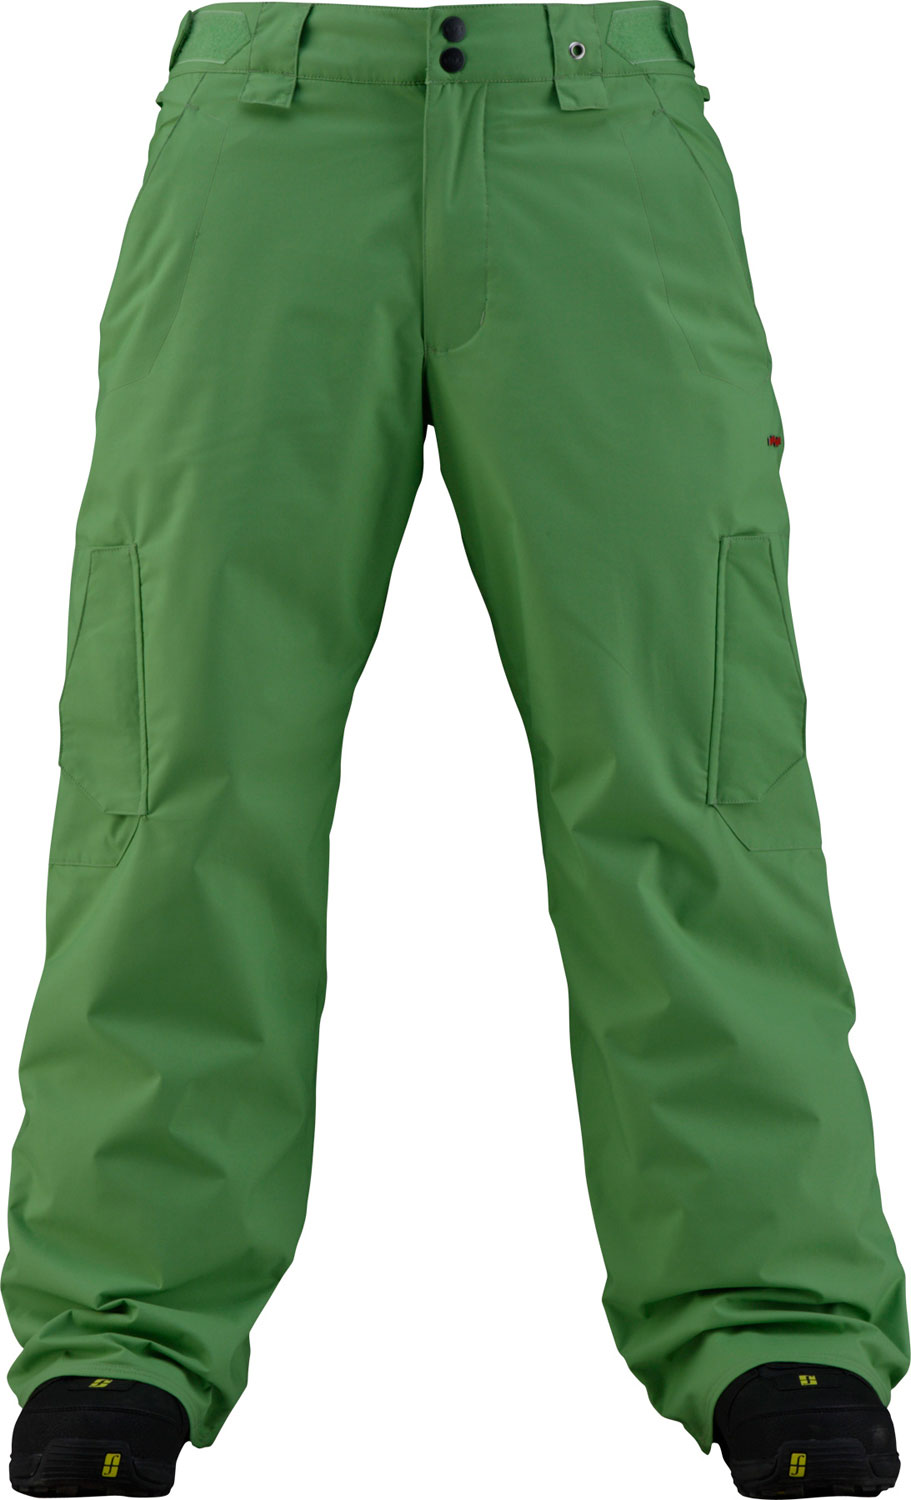 Snowboard These snowboard pants scream style. The pants are part of the shell series, and allow maximum breathability as well as a high-tech waterproof material. Specifically these pants are made with 2L MicroShield Nylon that protects as well as allows your legs to breathe. The shell is perfect for layering when conditions on the slopes are variable. The pants also feature durable fully taped seams, with a Taffeta lining. These pants come in a variety of colors, and are sure to please the entire Tribe.Key Features of the Foursquare Chief Snowboard Pants: 5,000mm Waterproof 5,000g Breathability Series: Shell Material: 2L MicroShield Nylon oxford Fully taped seams Taffeta lining - $70.95